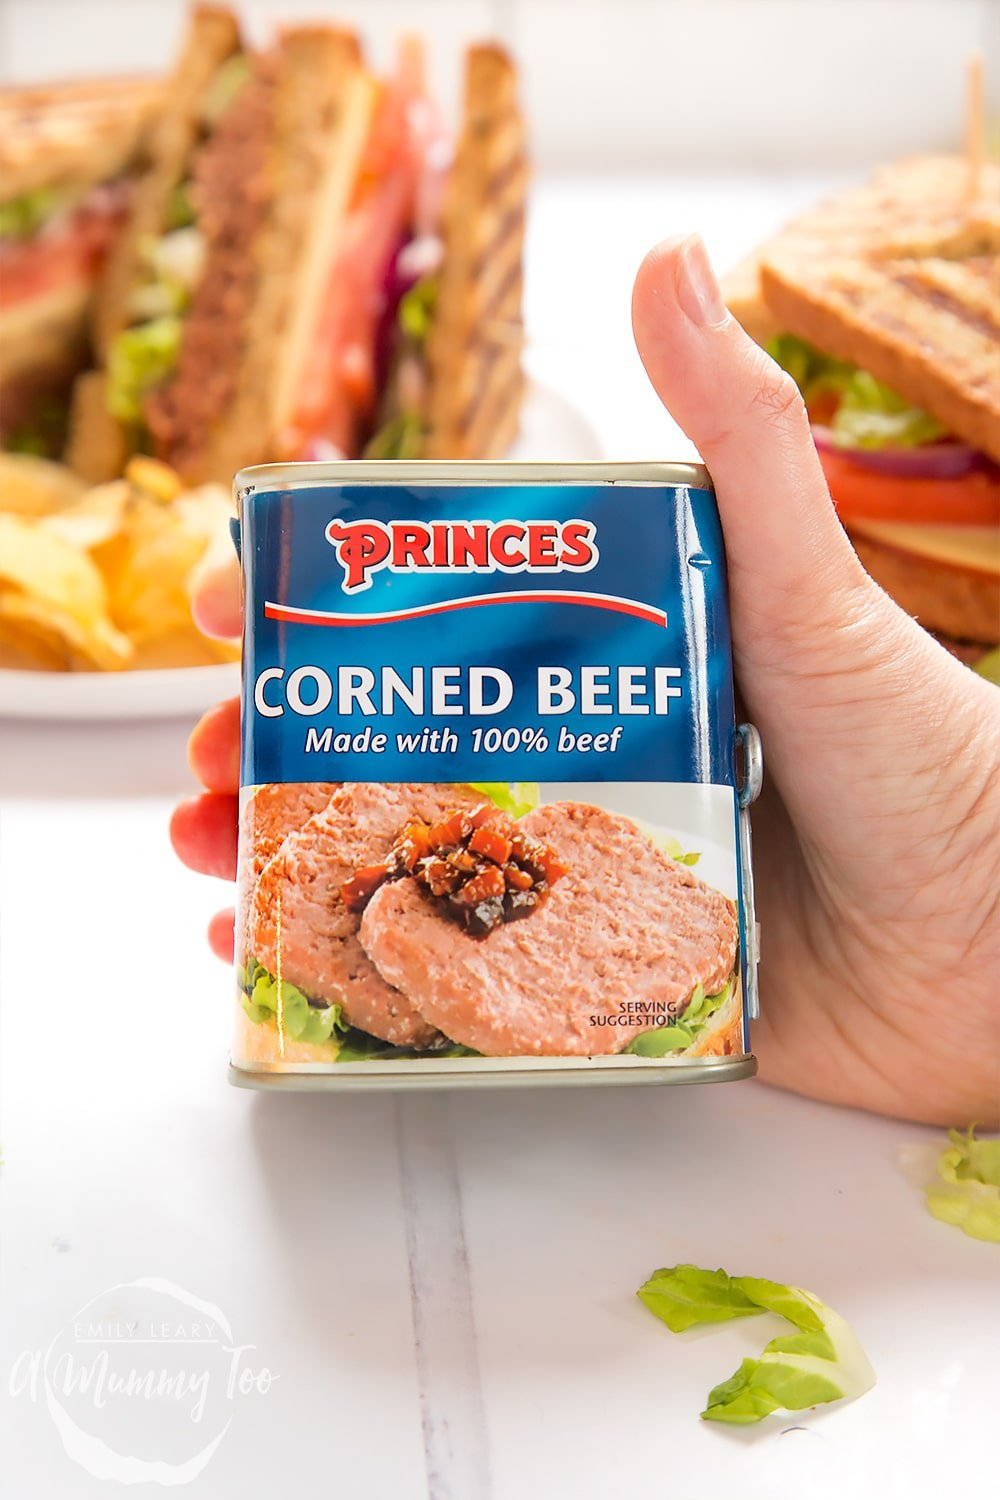 Princes corned beef is used to create this delicious deli-style corned beef on rye sandwich